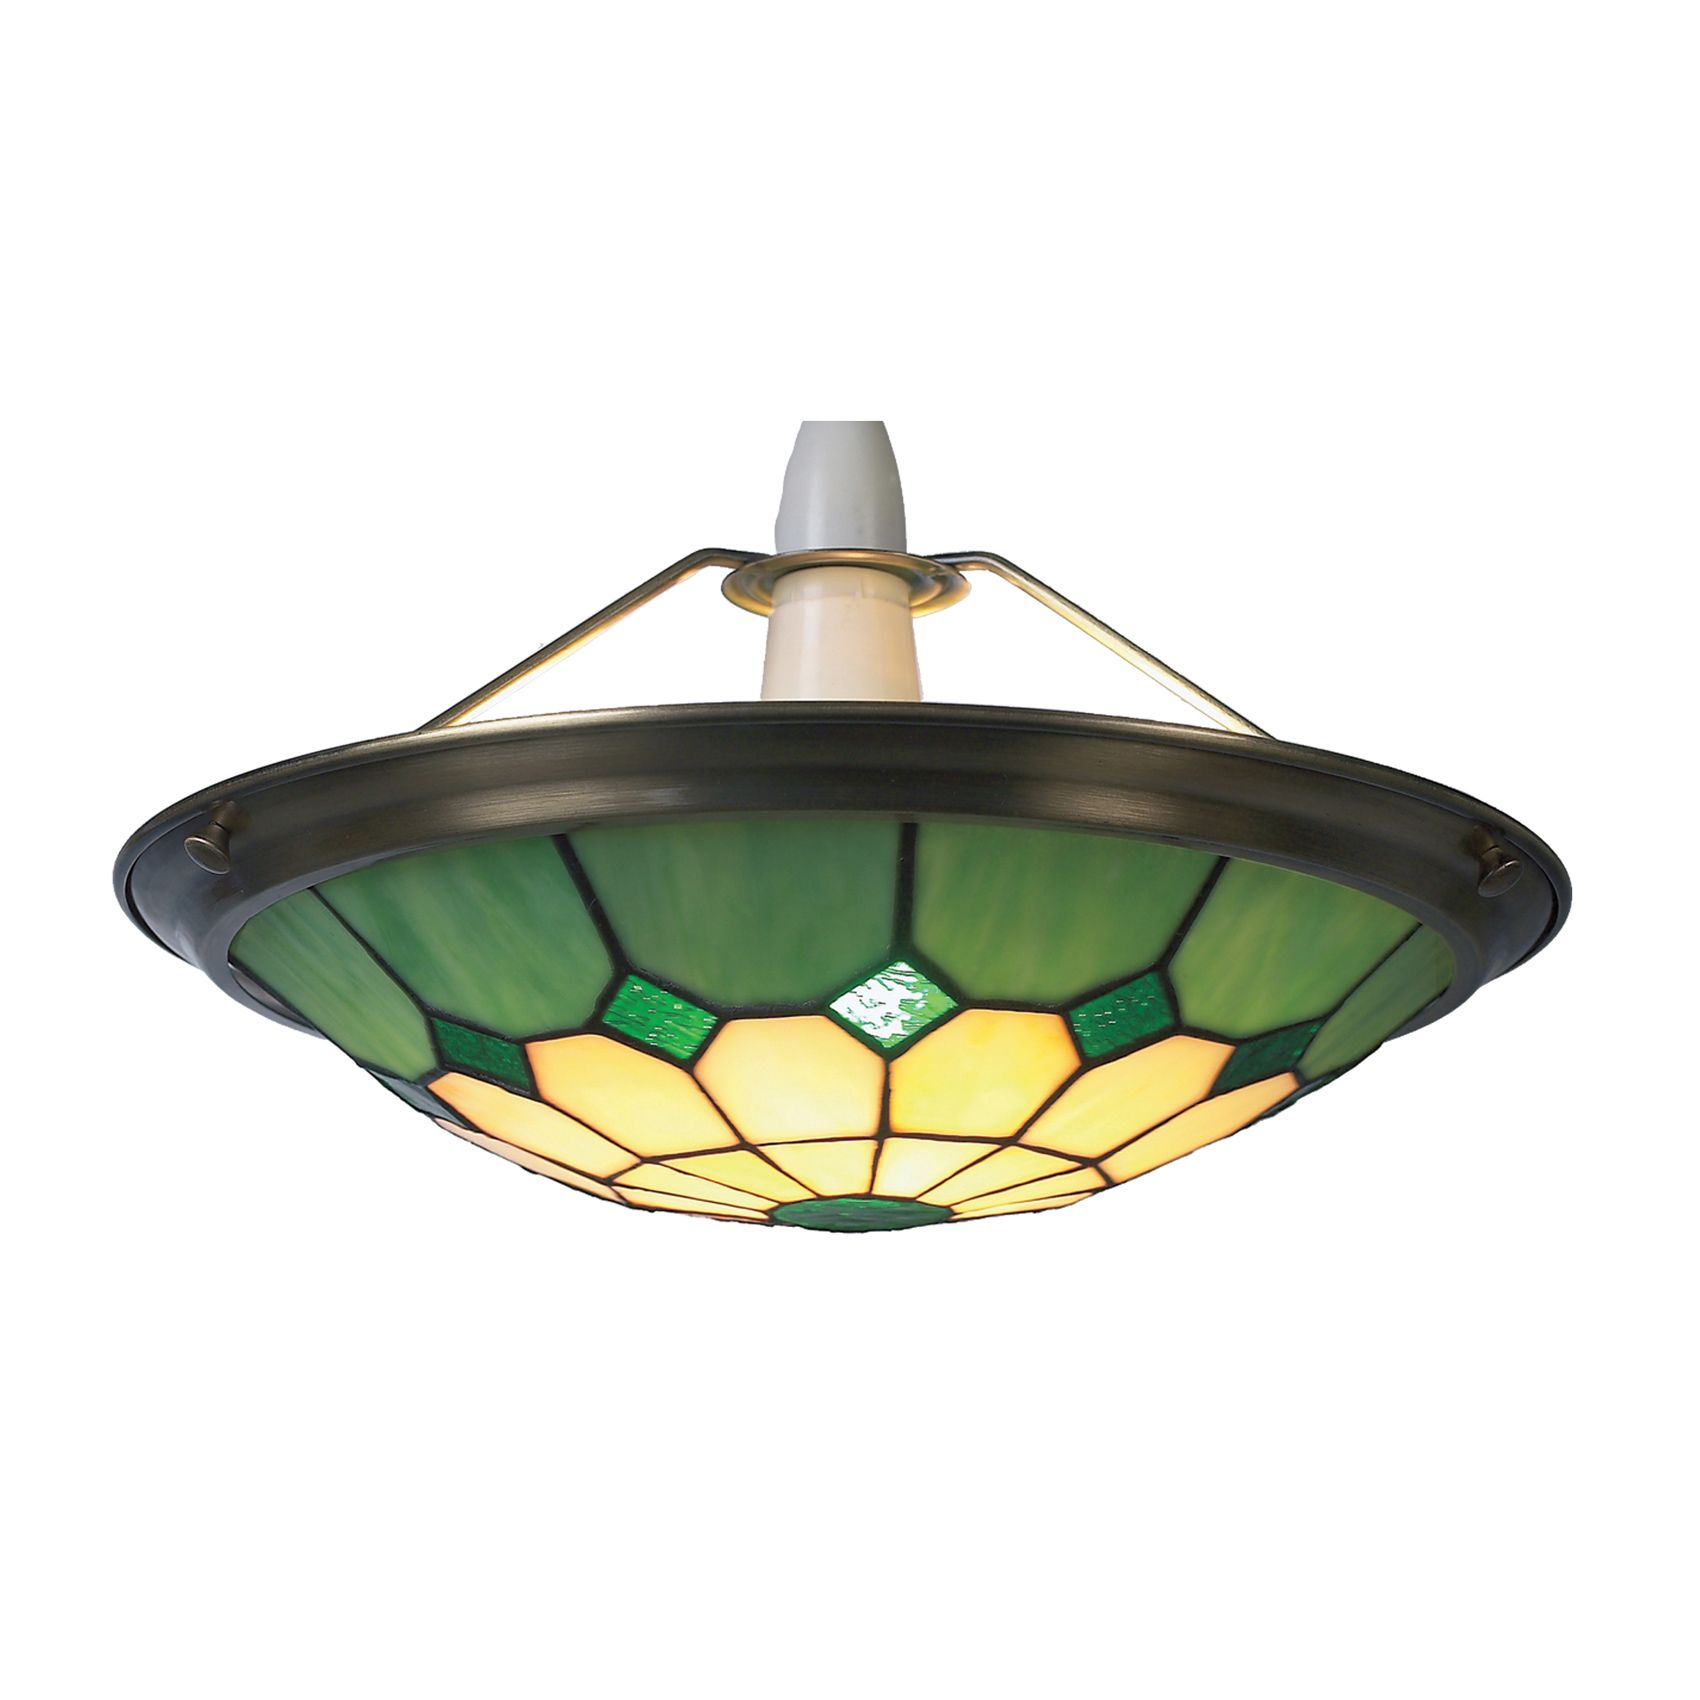 hanging and custom style ceiling glass ceilings mission inverted art bronze green lotus yellow pendant light mediterranean lamp genuine rc plus lighting springdale lamps traditional blue tiffany splendent mini